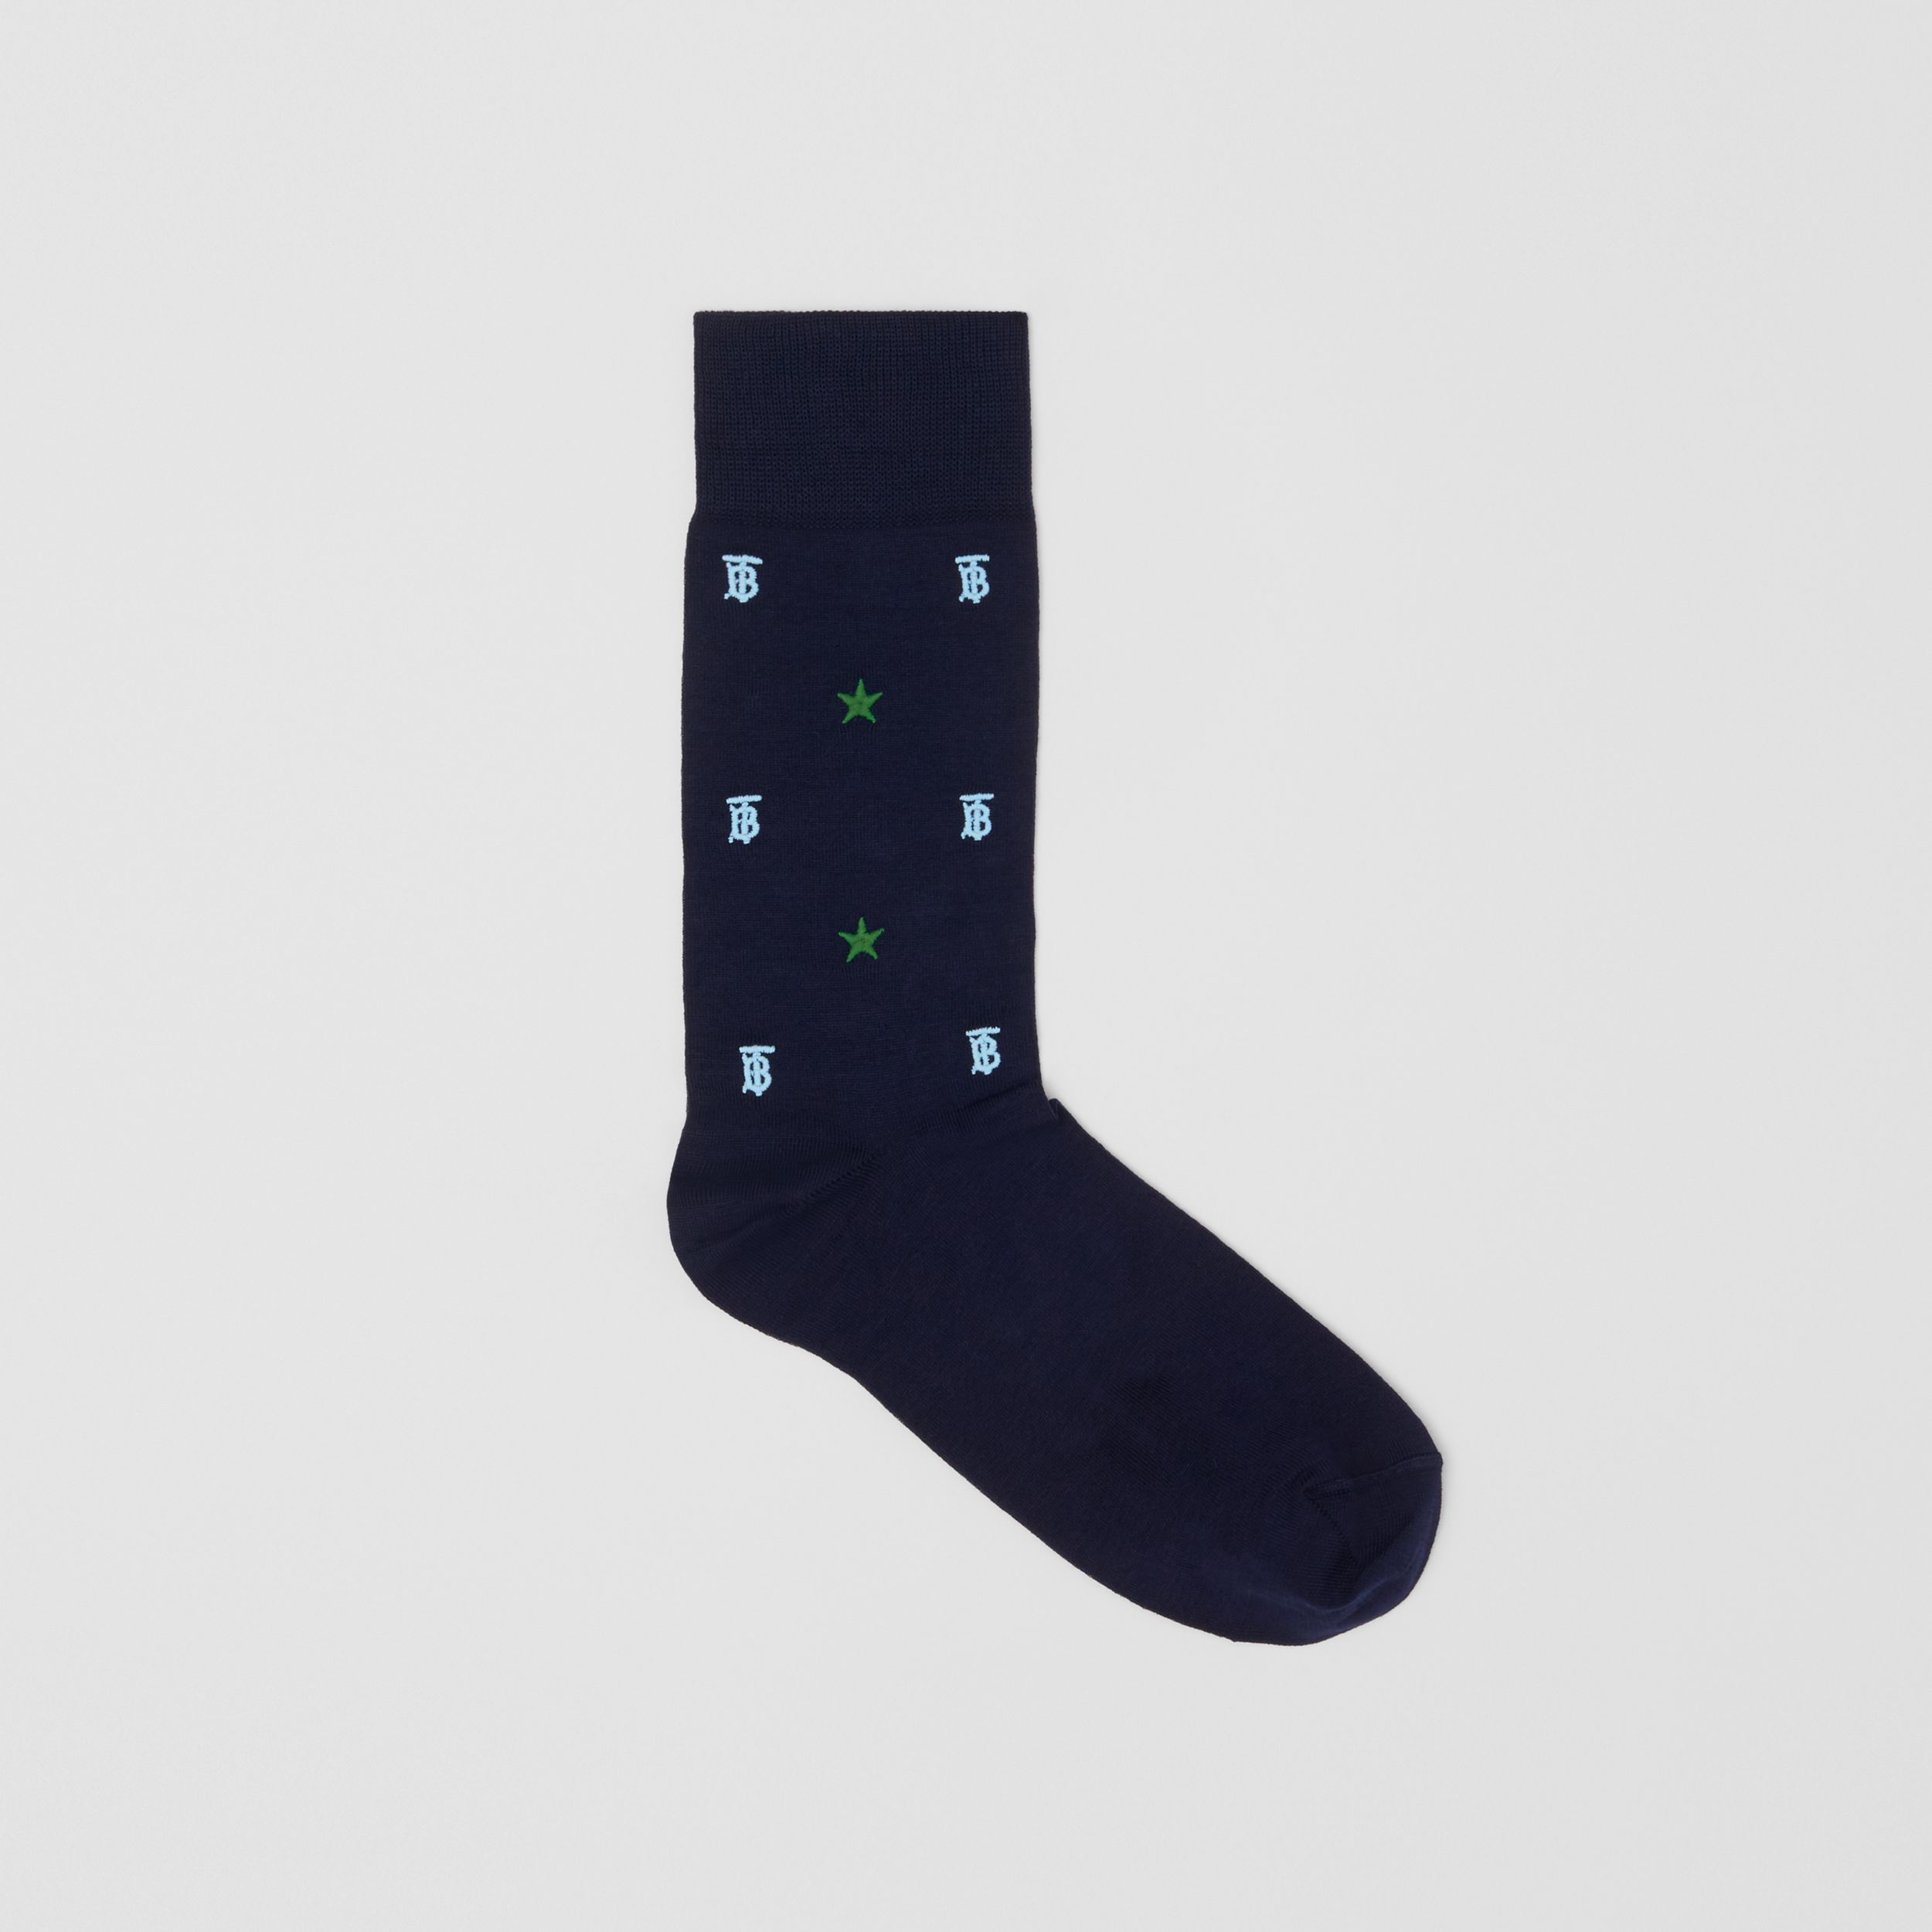 Star and Monogram Motif Cotton Blend Socks in Navy | Burberry - 1